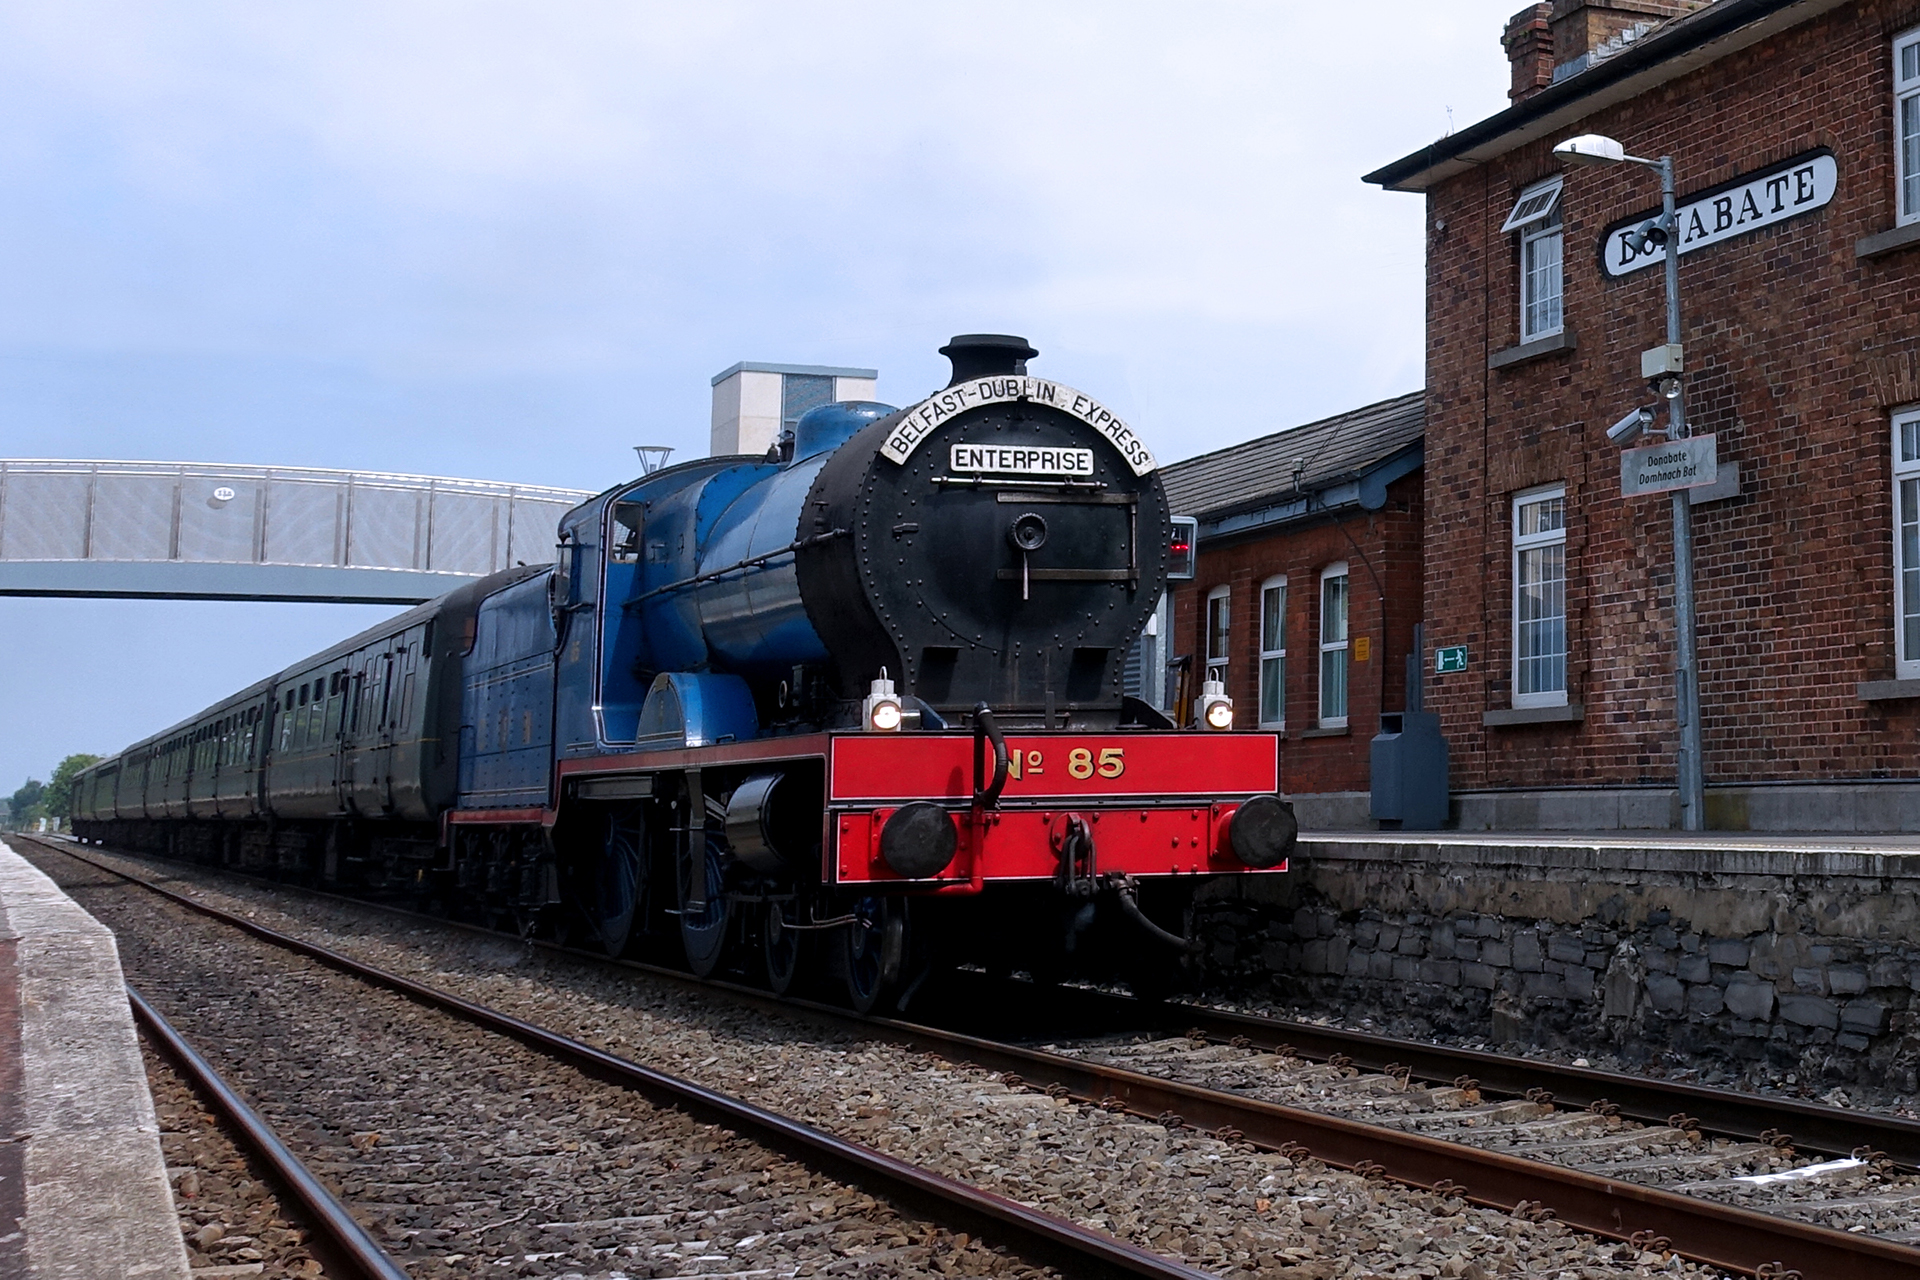 train waiting for departure in the donabate train station